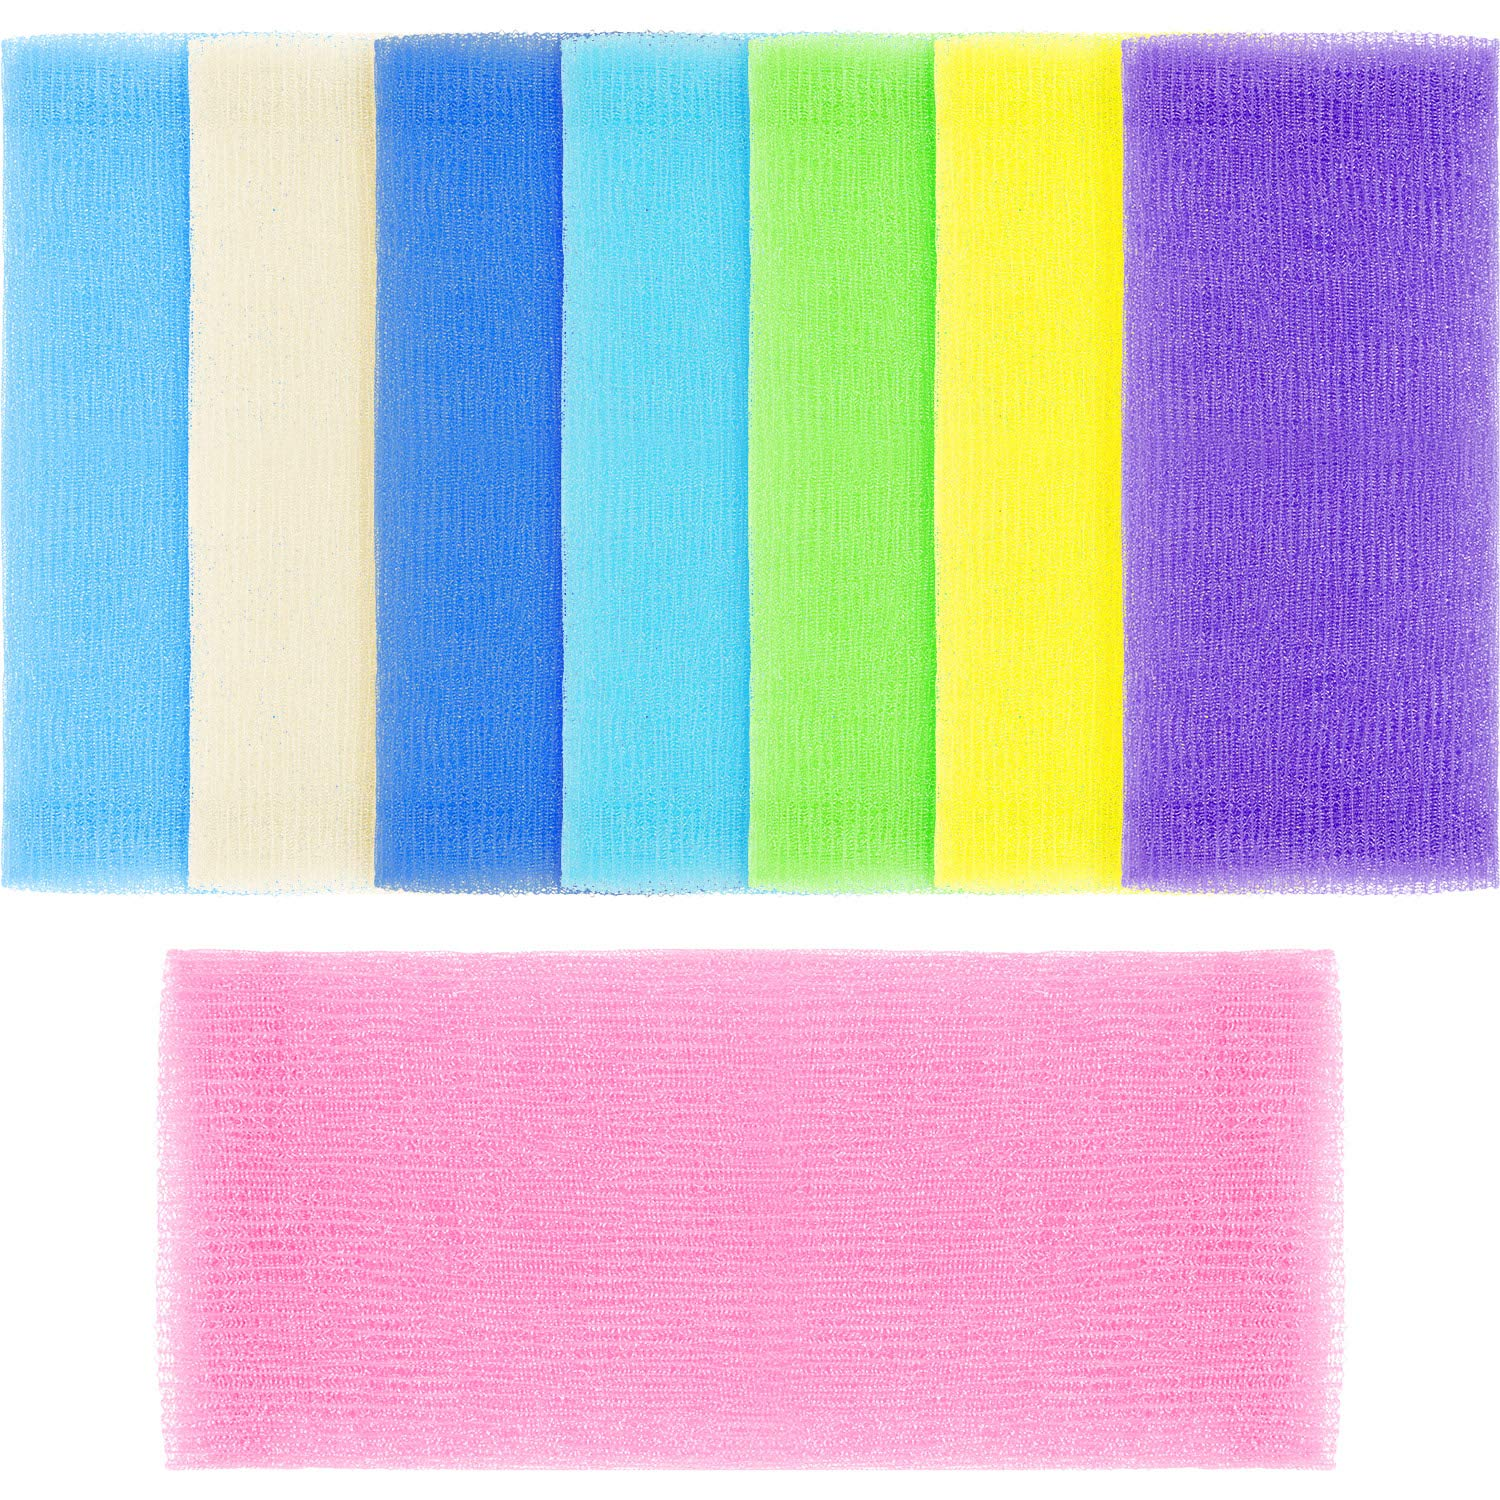 Boao 8 Pieces 36 Inch Extra Long Exfoliating Bath Cloth Nylon Bath Towel Body Shower Cleaning Sponges (Multiple Colors)